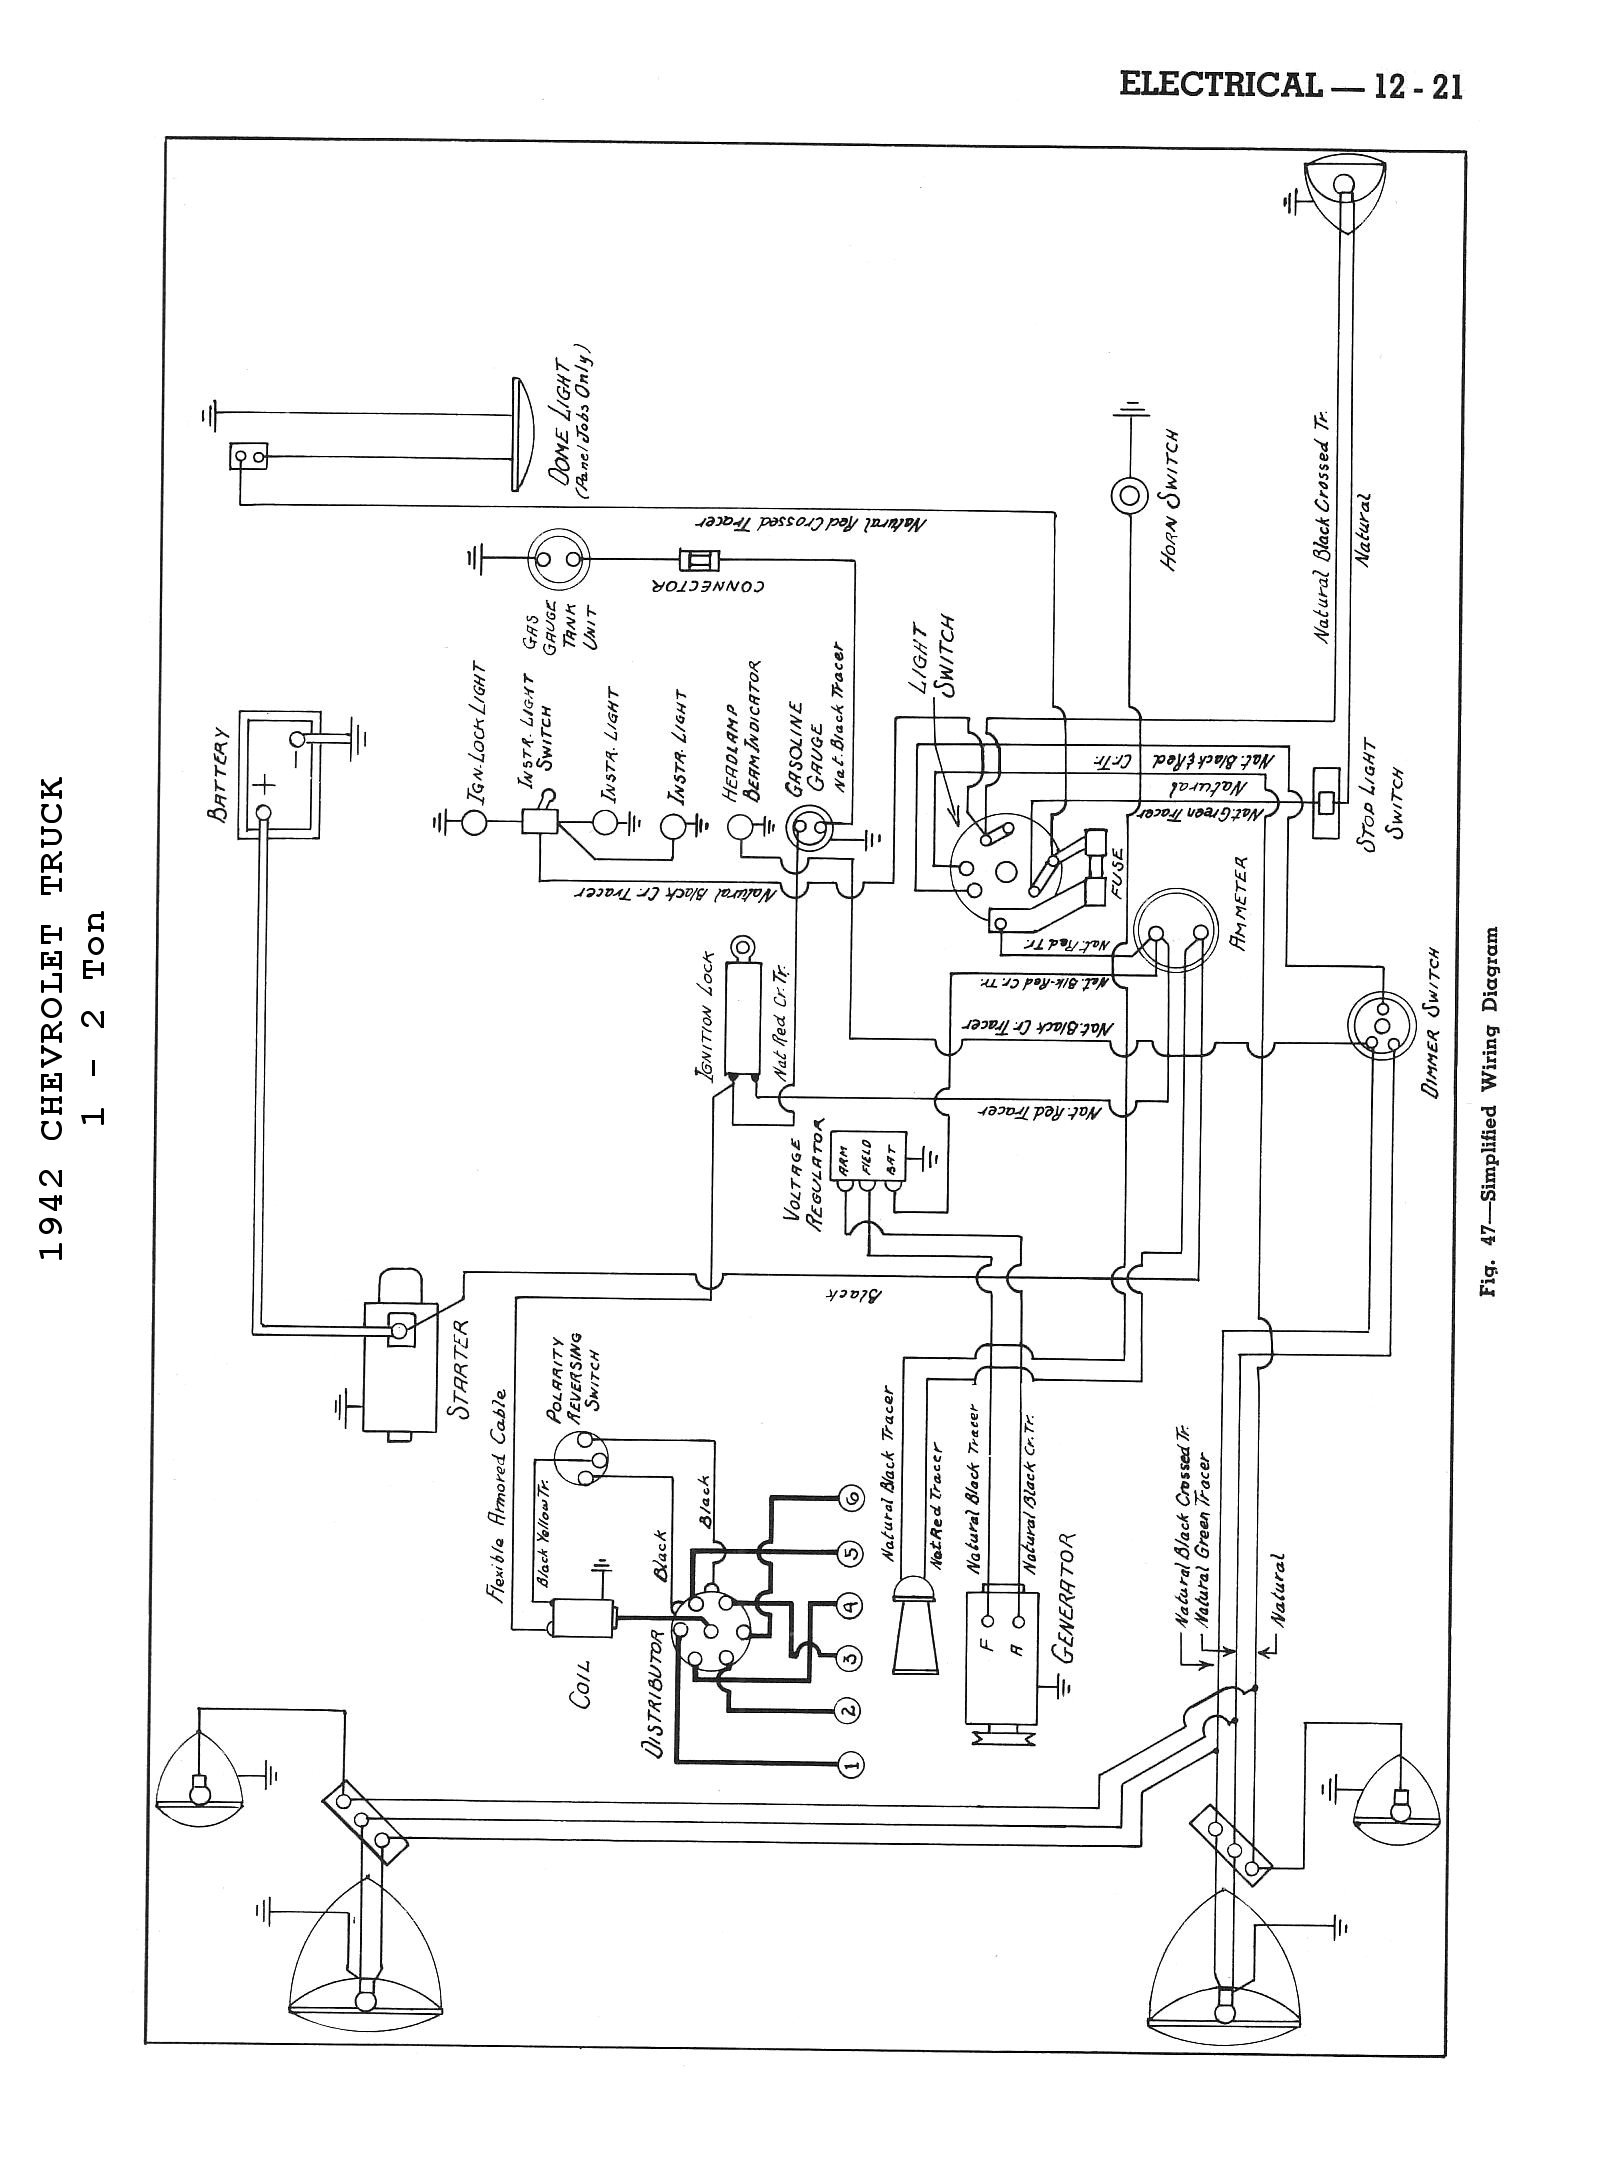 hight resolution of 1936 chevy pickup wiring diagram wiring diagrams recent 1936 pontiac wiring diagram